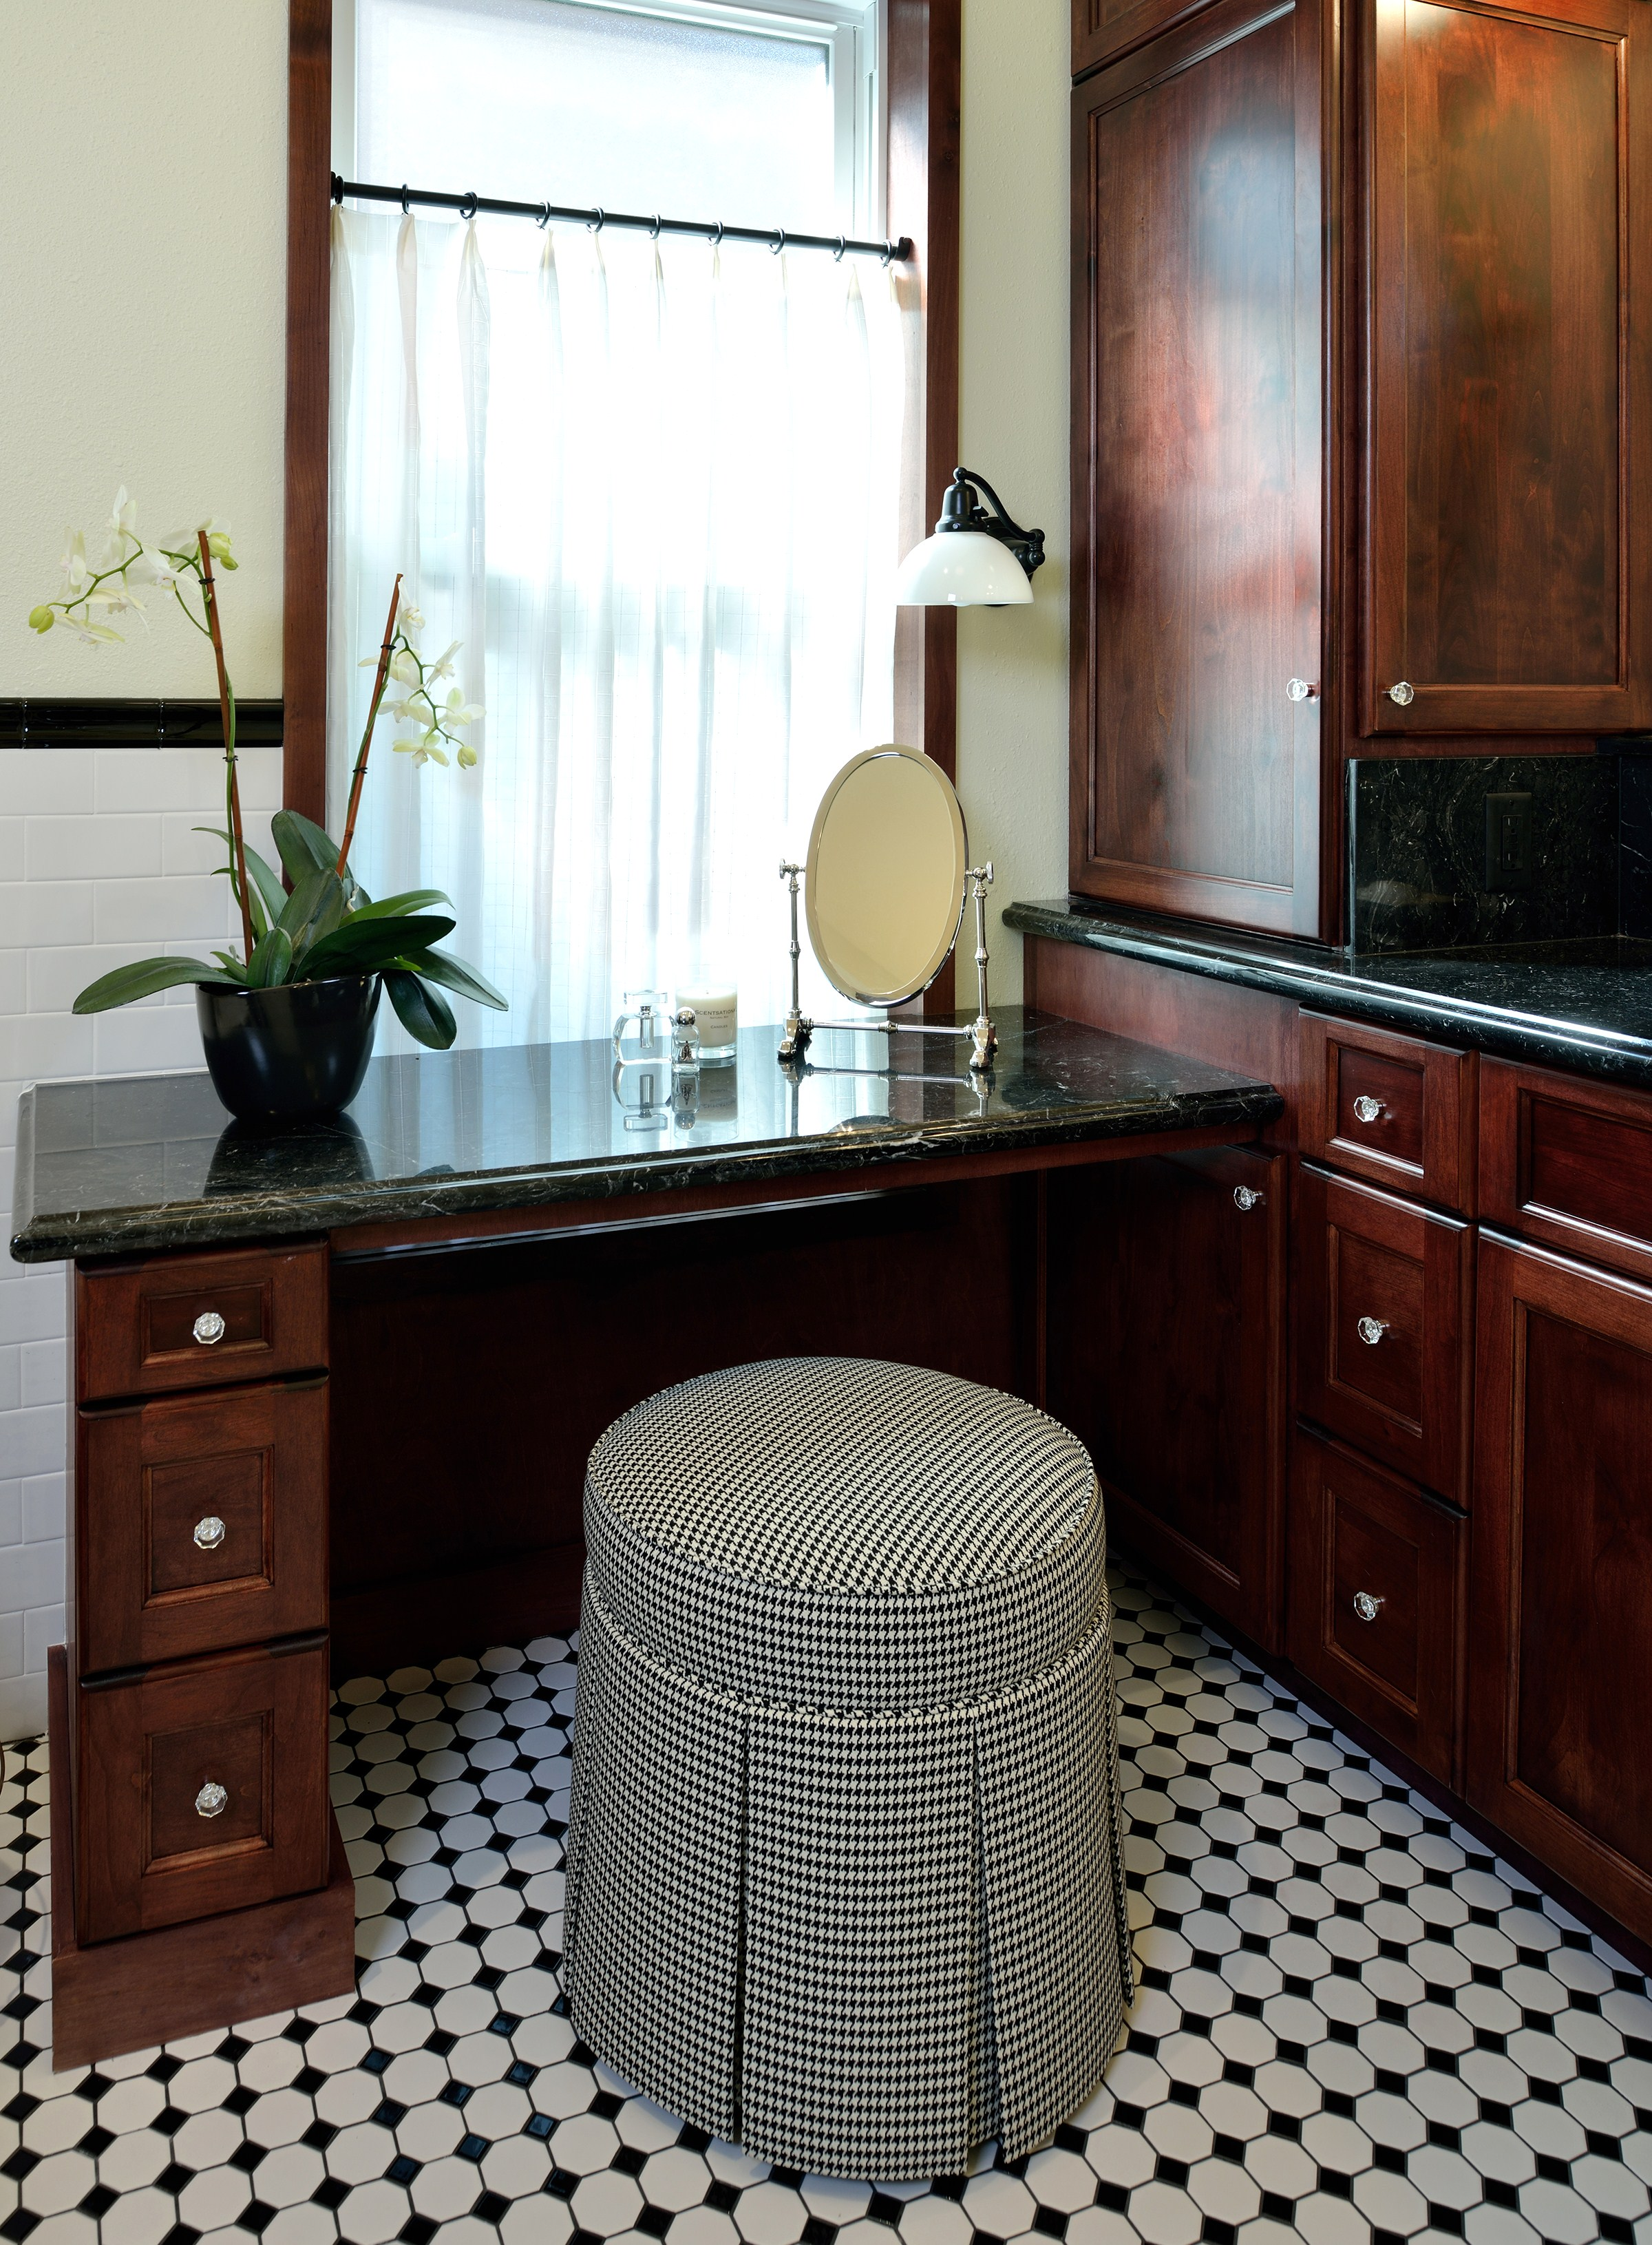 Make up vanity with houndstooth stool and black and white tile floor, Designer: Carla Aston